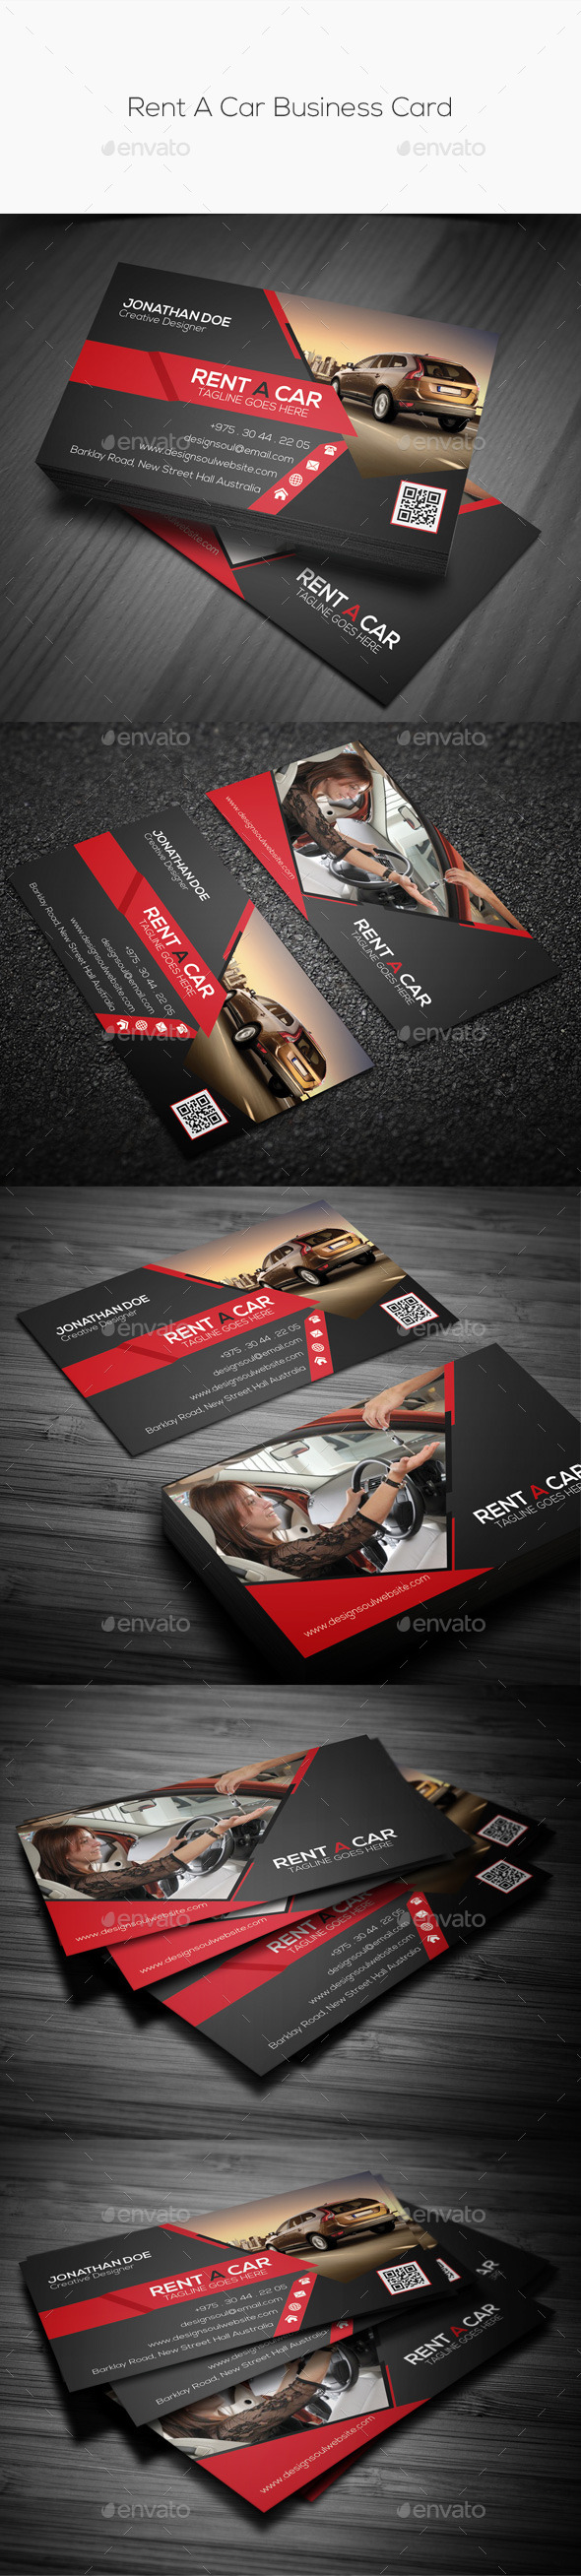 GraphicRiver Rent A Car Business Card 10069504